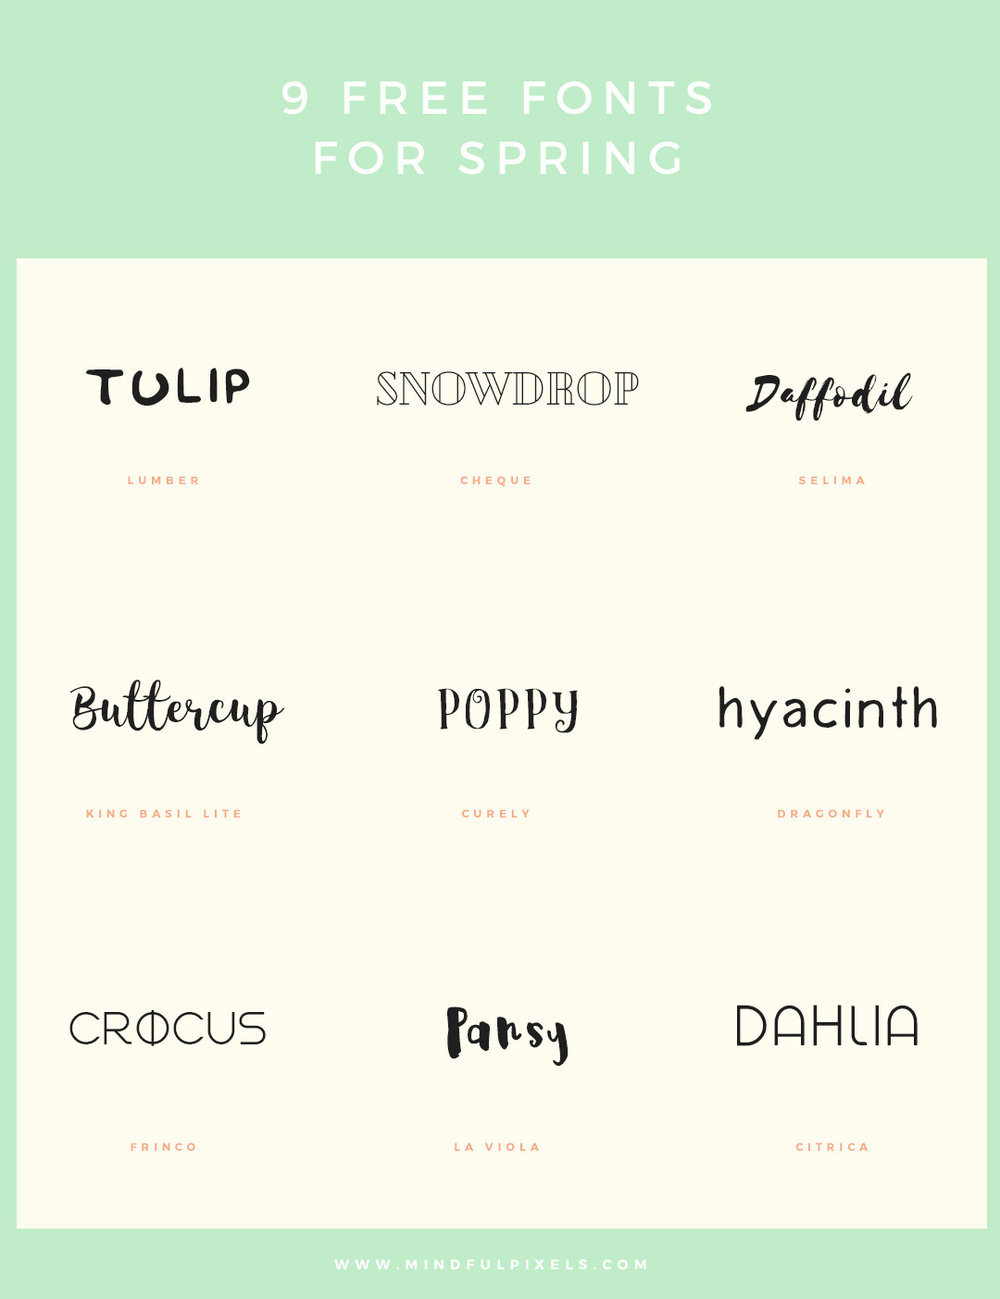 9 commercially free fonts for spring